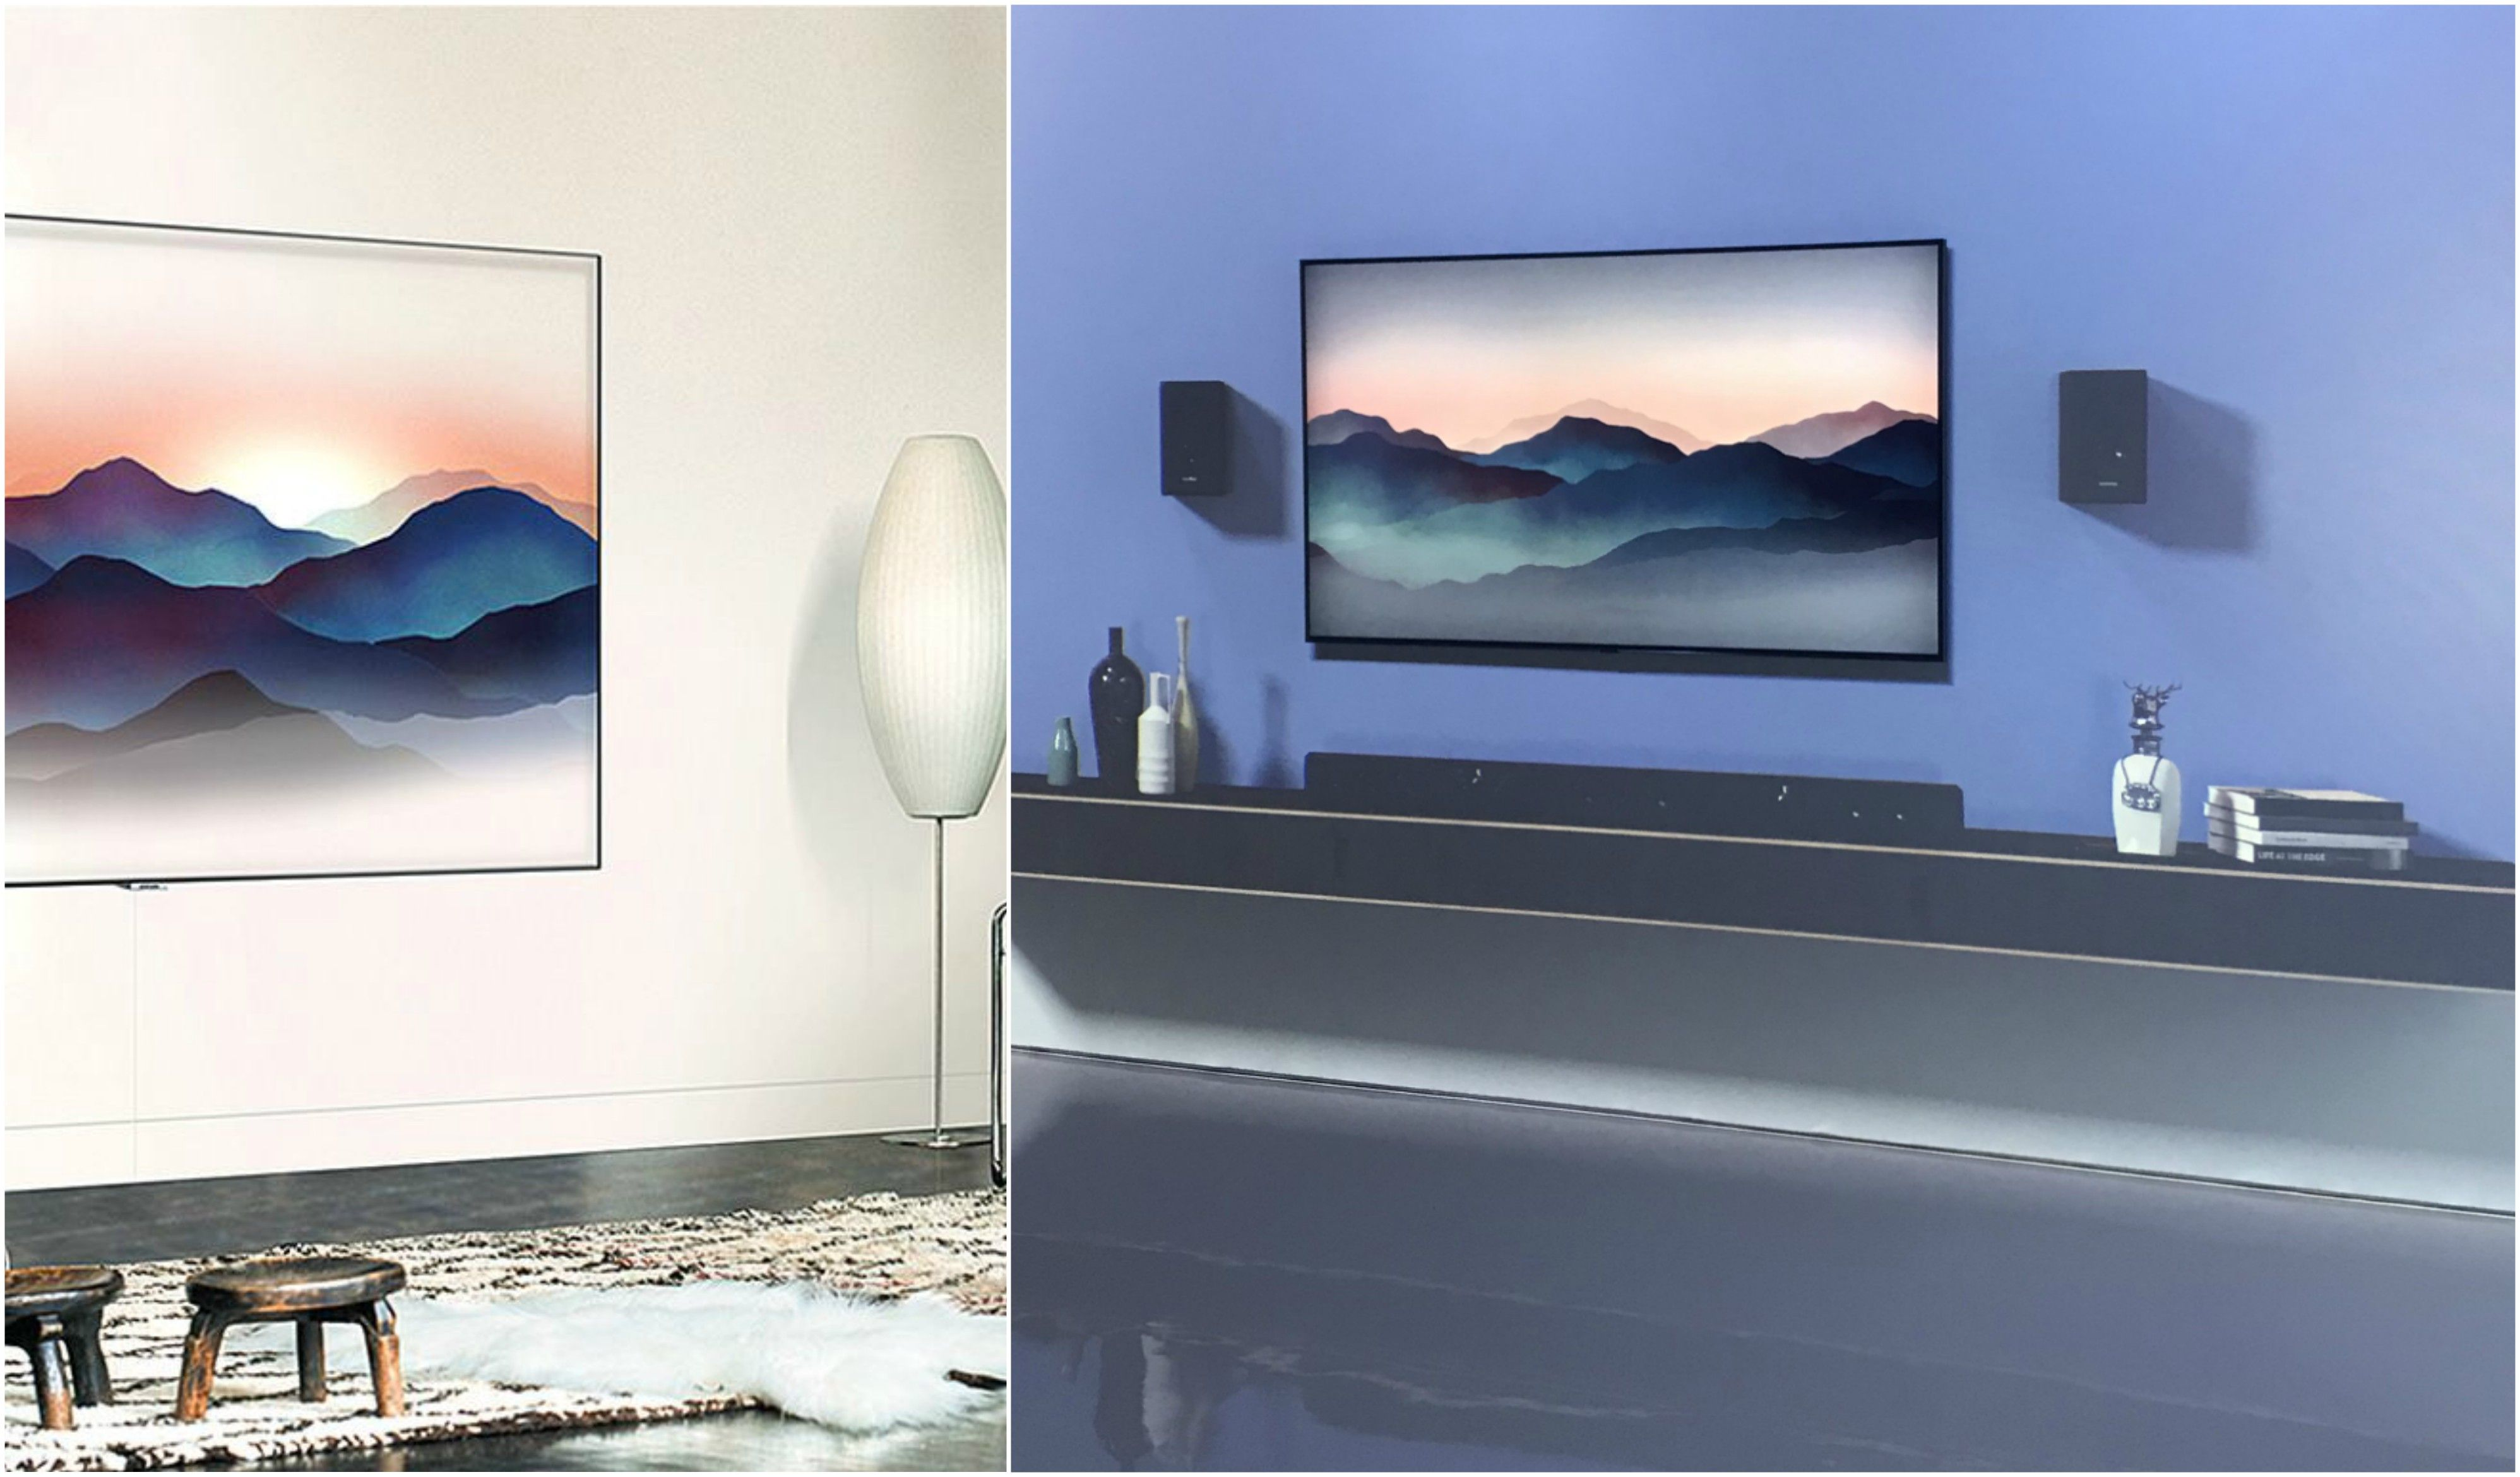 Samsung QLED TV - New Model Blends In With Your Wallpaper